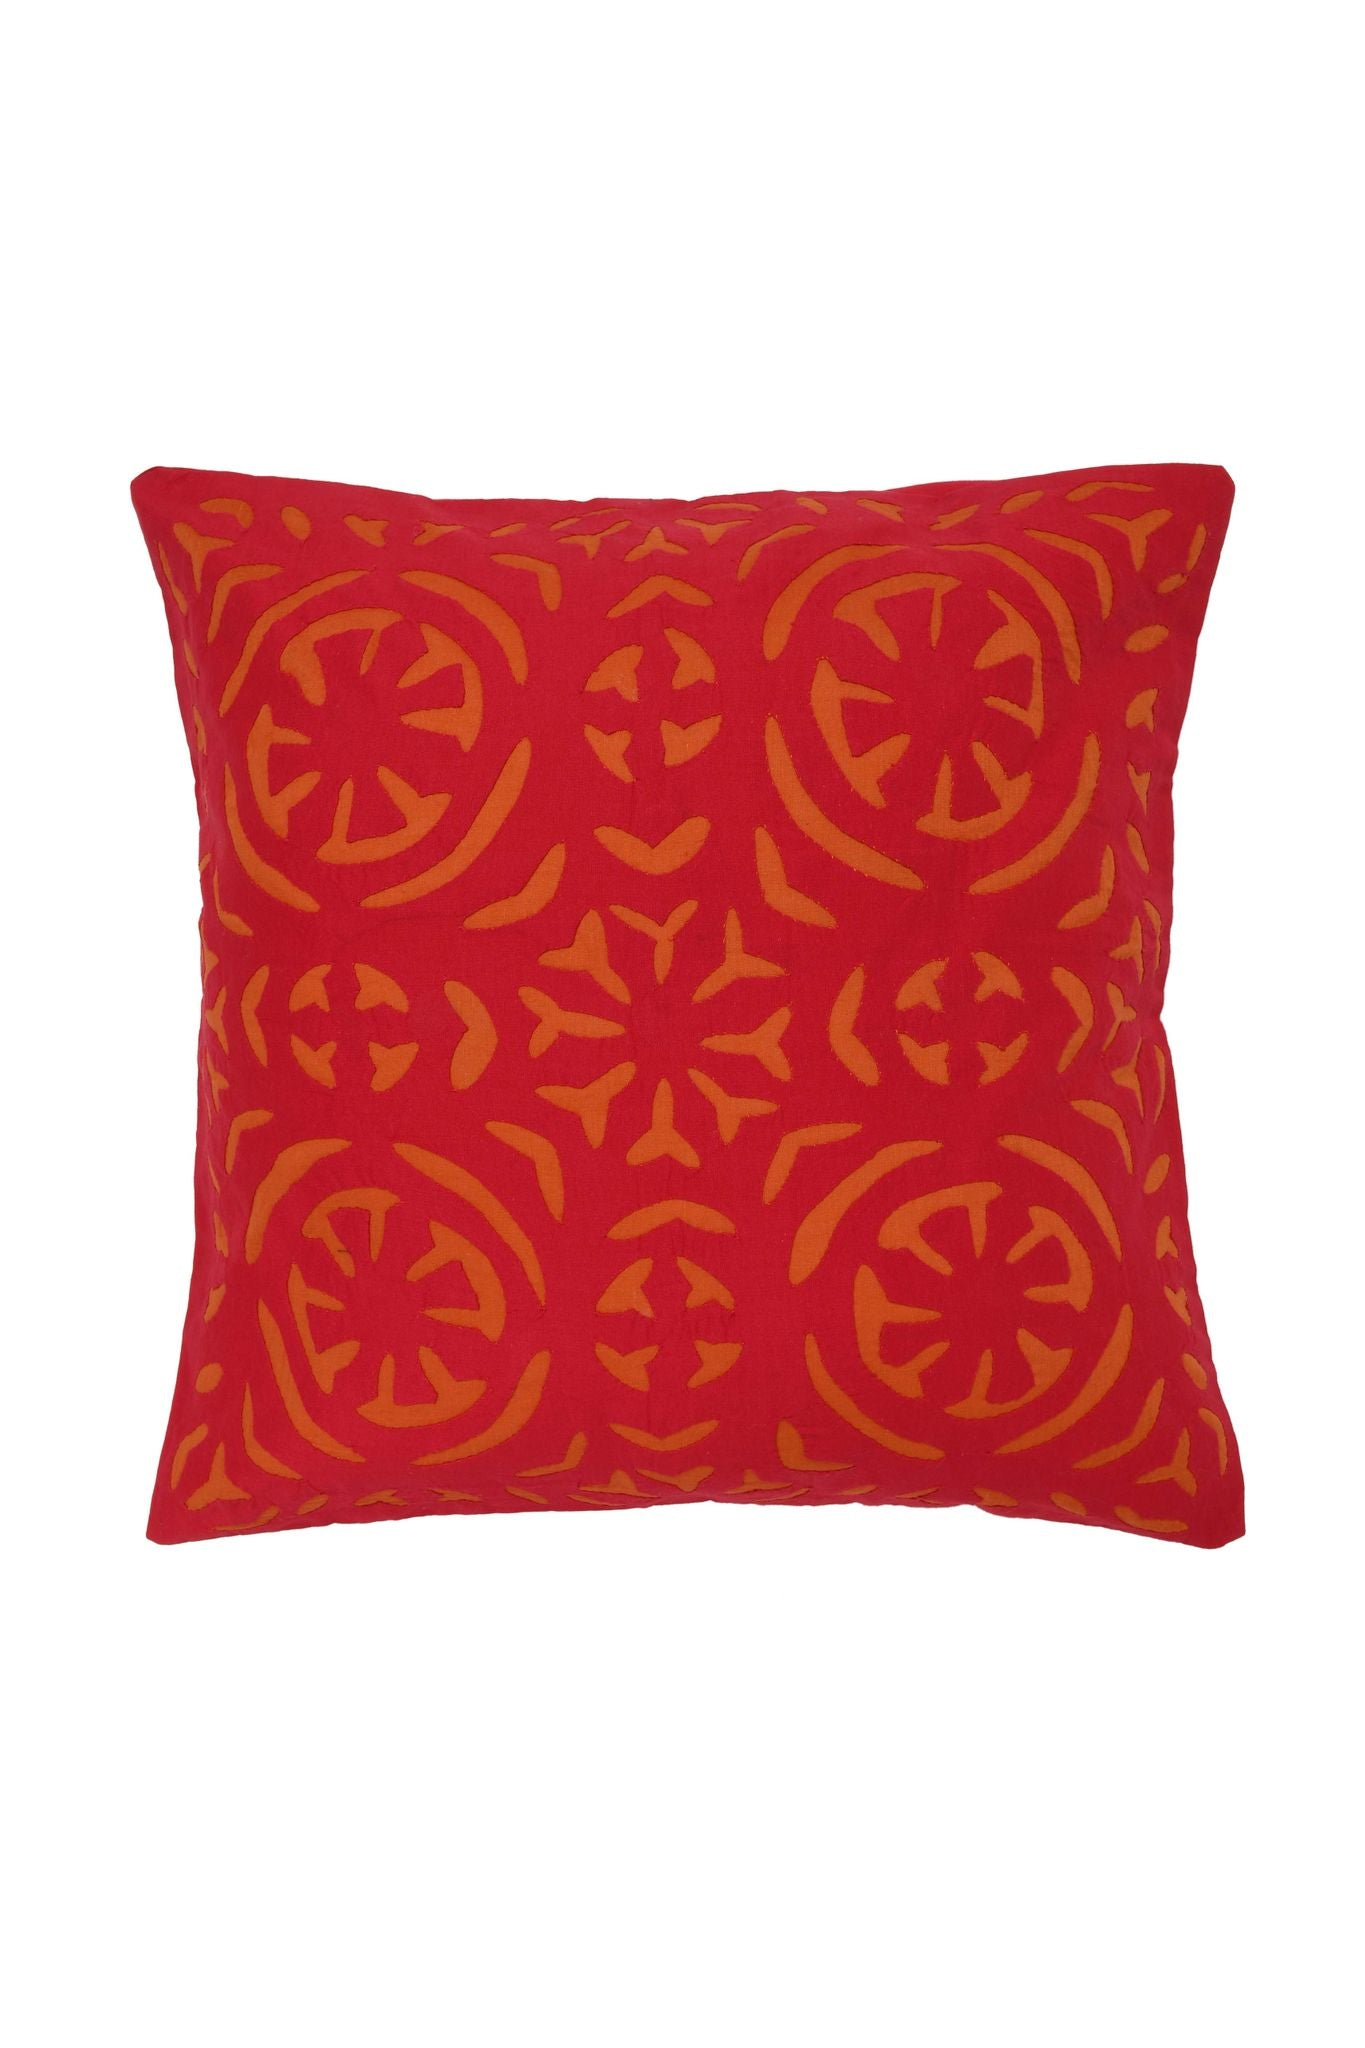 Hand Applique Red and Orance Cushion Cover